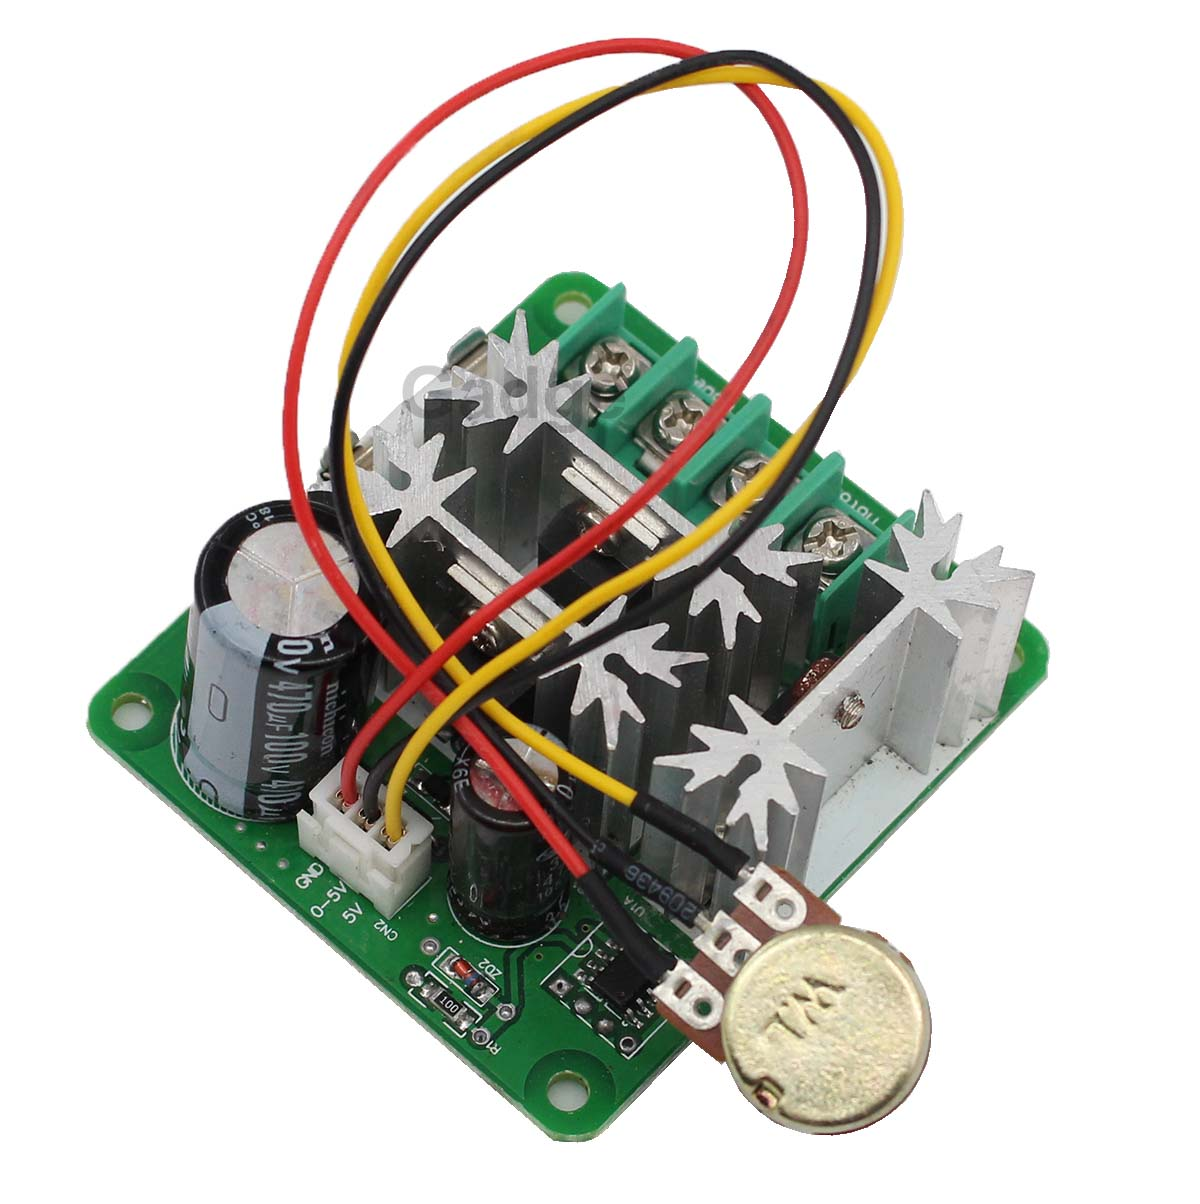 15a 6v 90v Pulse Width Modulator Pwm Dc Motor Speed Control Switch Is A Circuit To Uses Modulation Controller